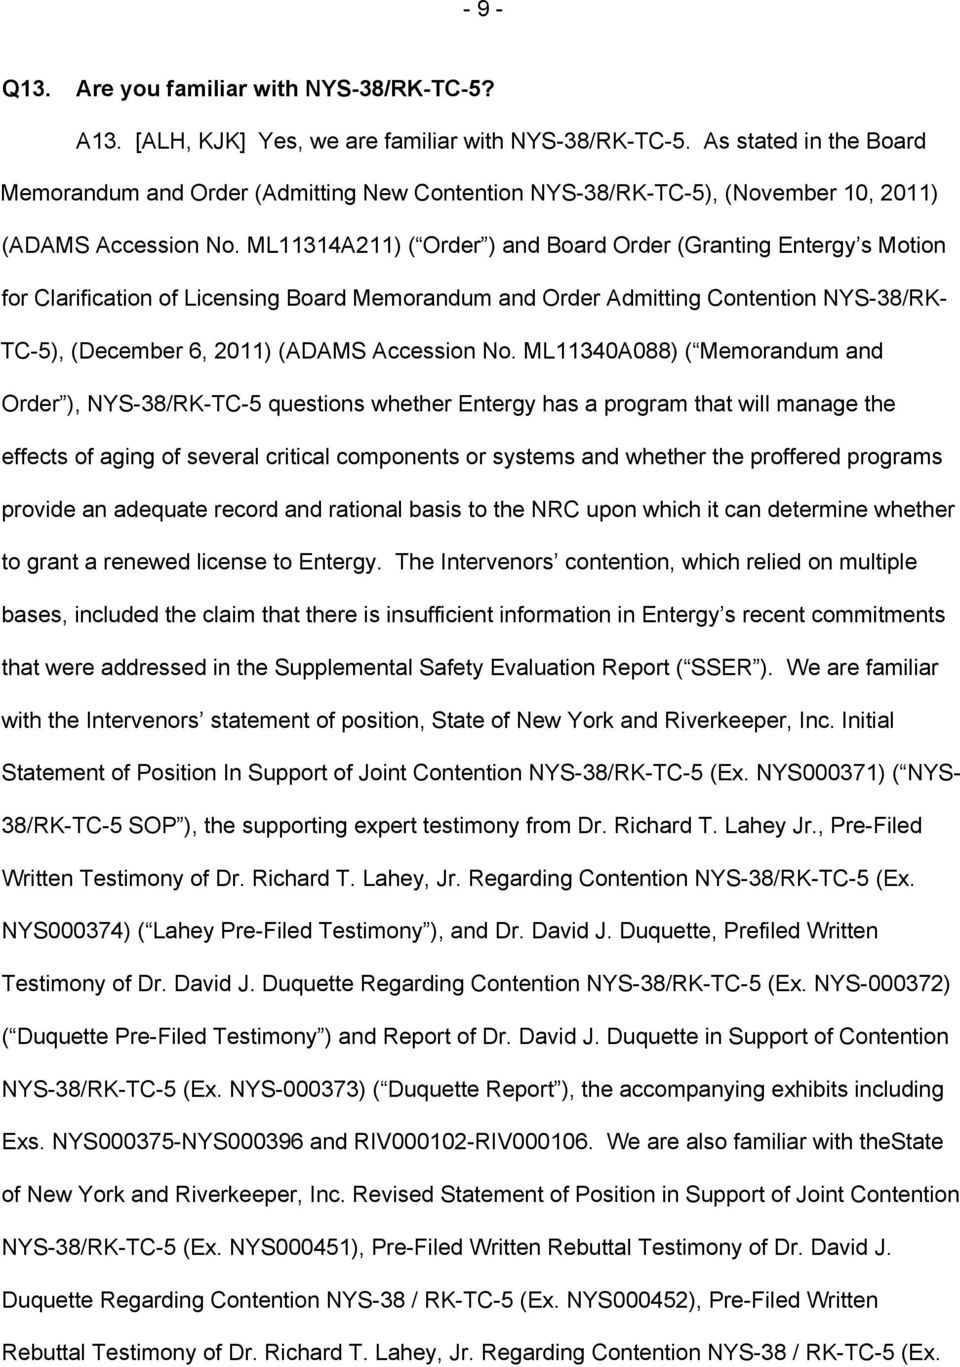 ML11314A211) ( Order ) and Board Order (Granting Entergy s Motion for Clarification of Licensing Board Memorandum and Order Admitting Contention NYS-38/RK- TC-5), (December 6, 2011) (ADAMS Accession